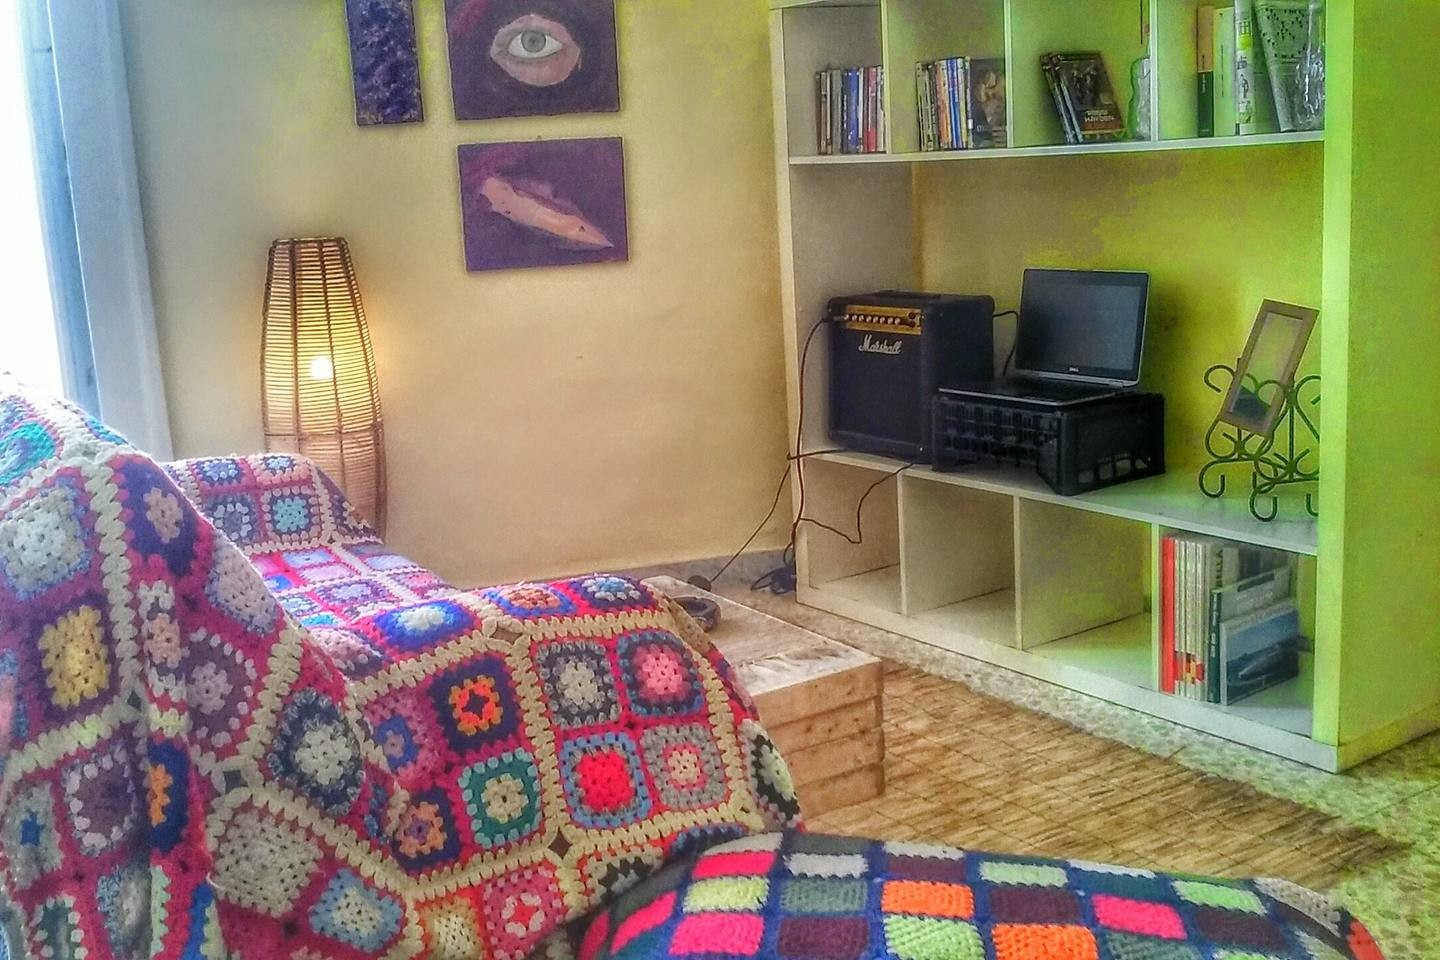 cozy-room-at-the-best-location-historical-cntr-a0c52e7aa3982aabfa5ee53df17ea6c0